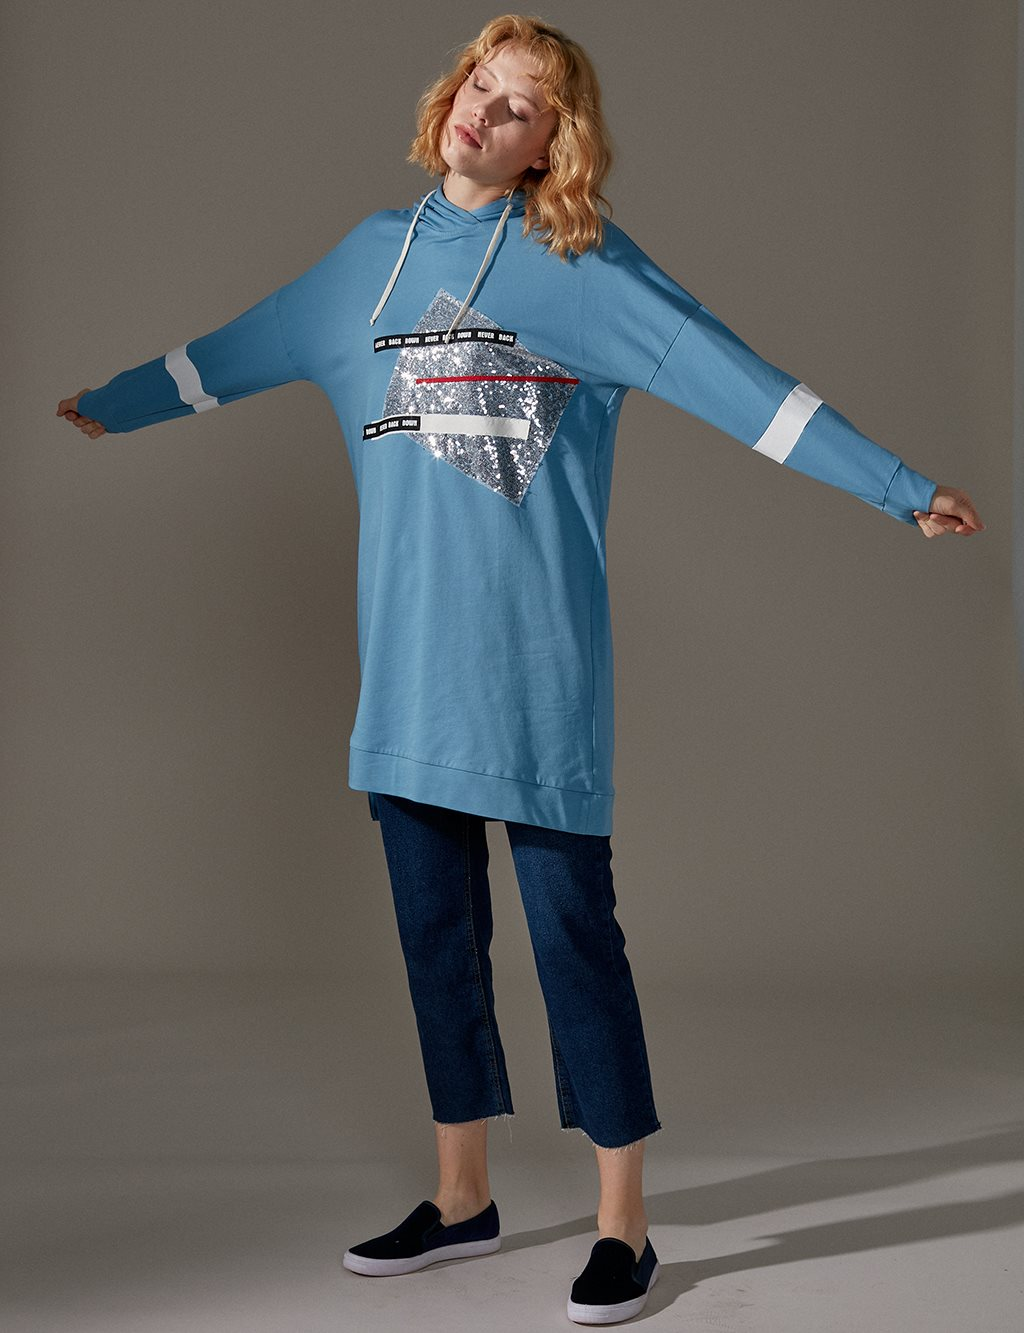 KYR Printed Sweatshirt A9 81022 Navy Blue